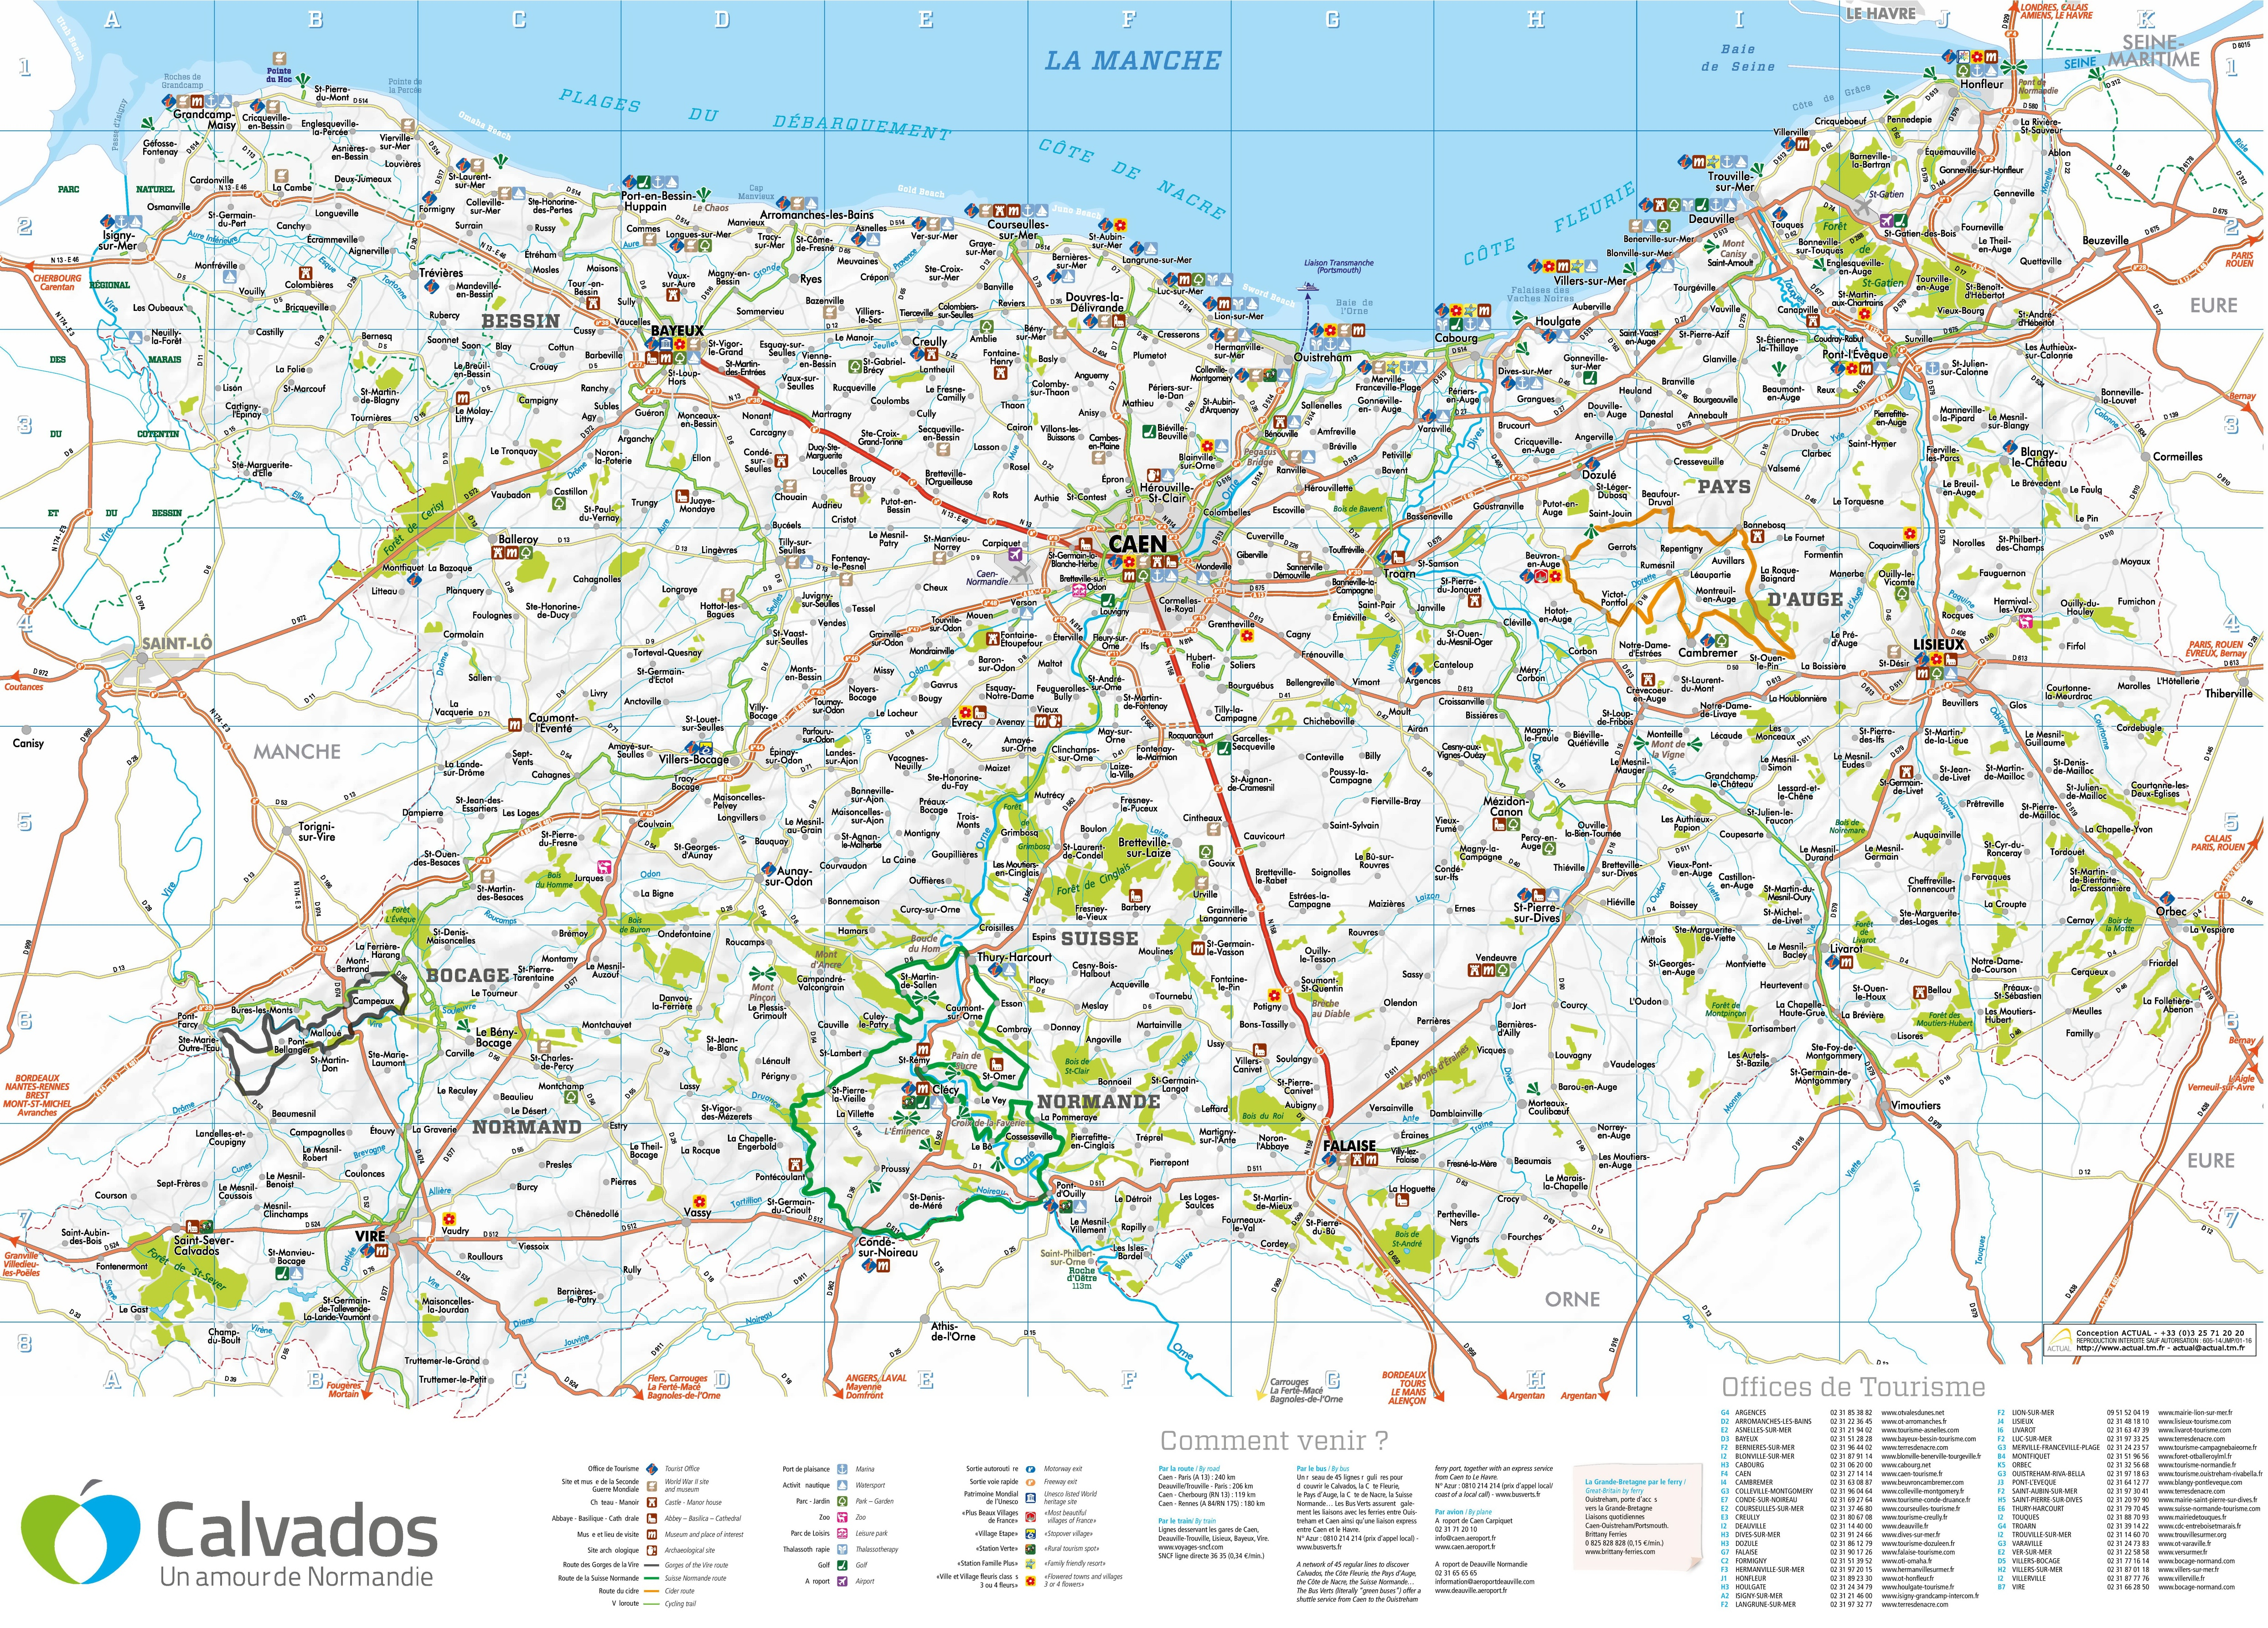 Map Of Normandy France Detailed.Large Detailed Map Of Calvados